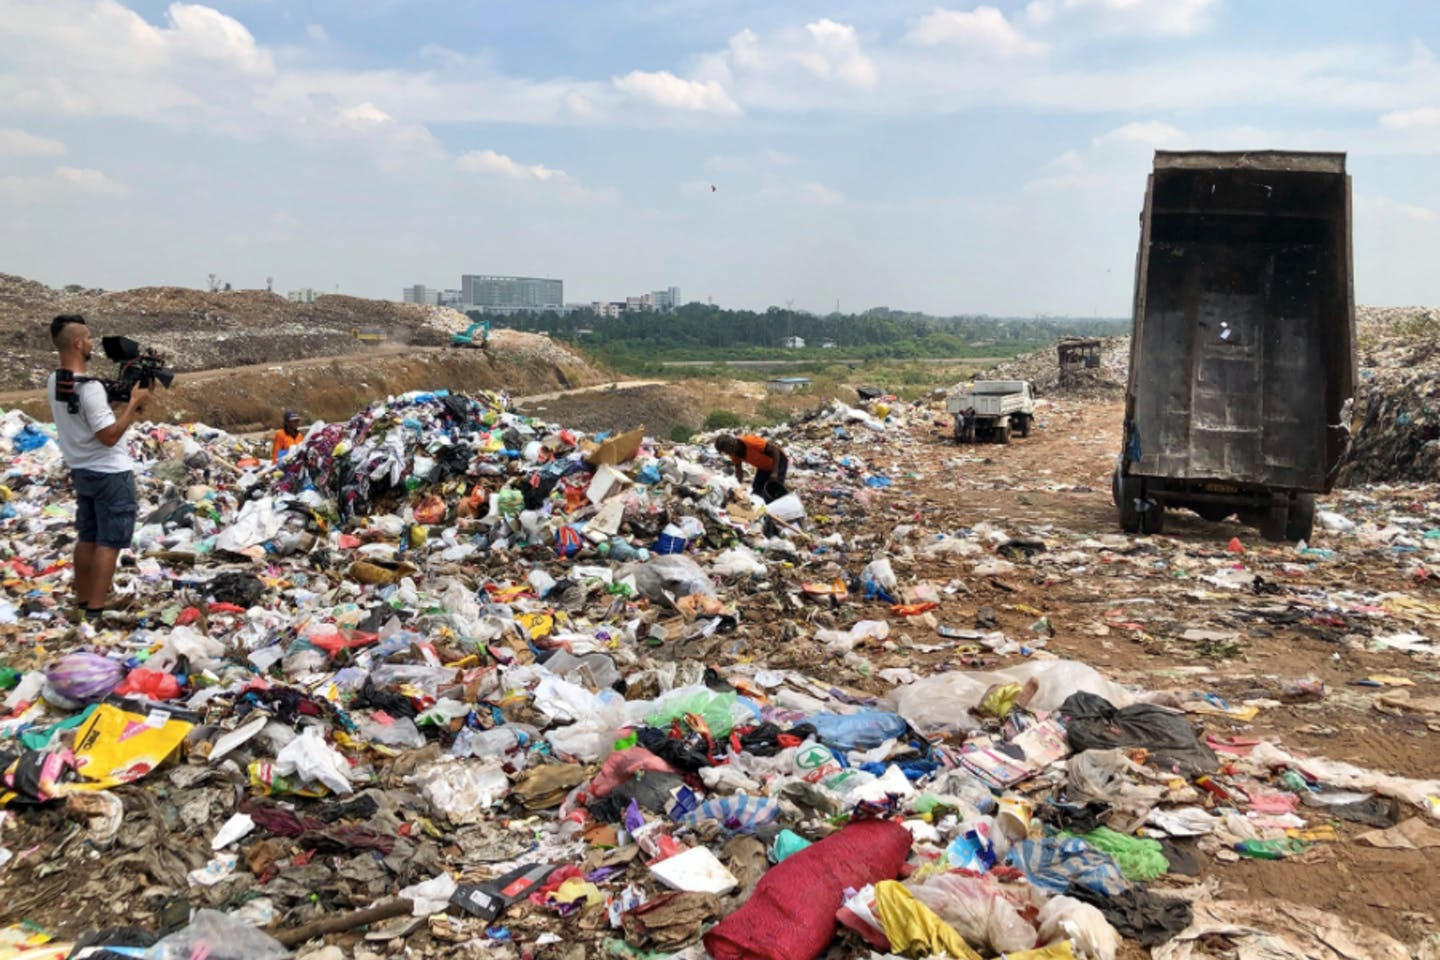 A landfill in Colombo, Sri Lanka